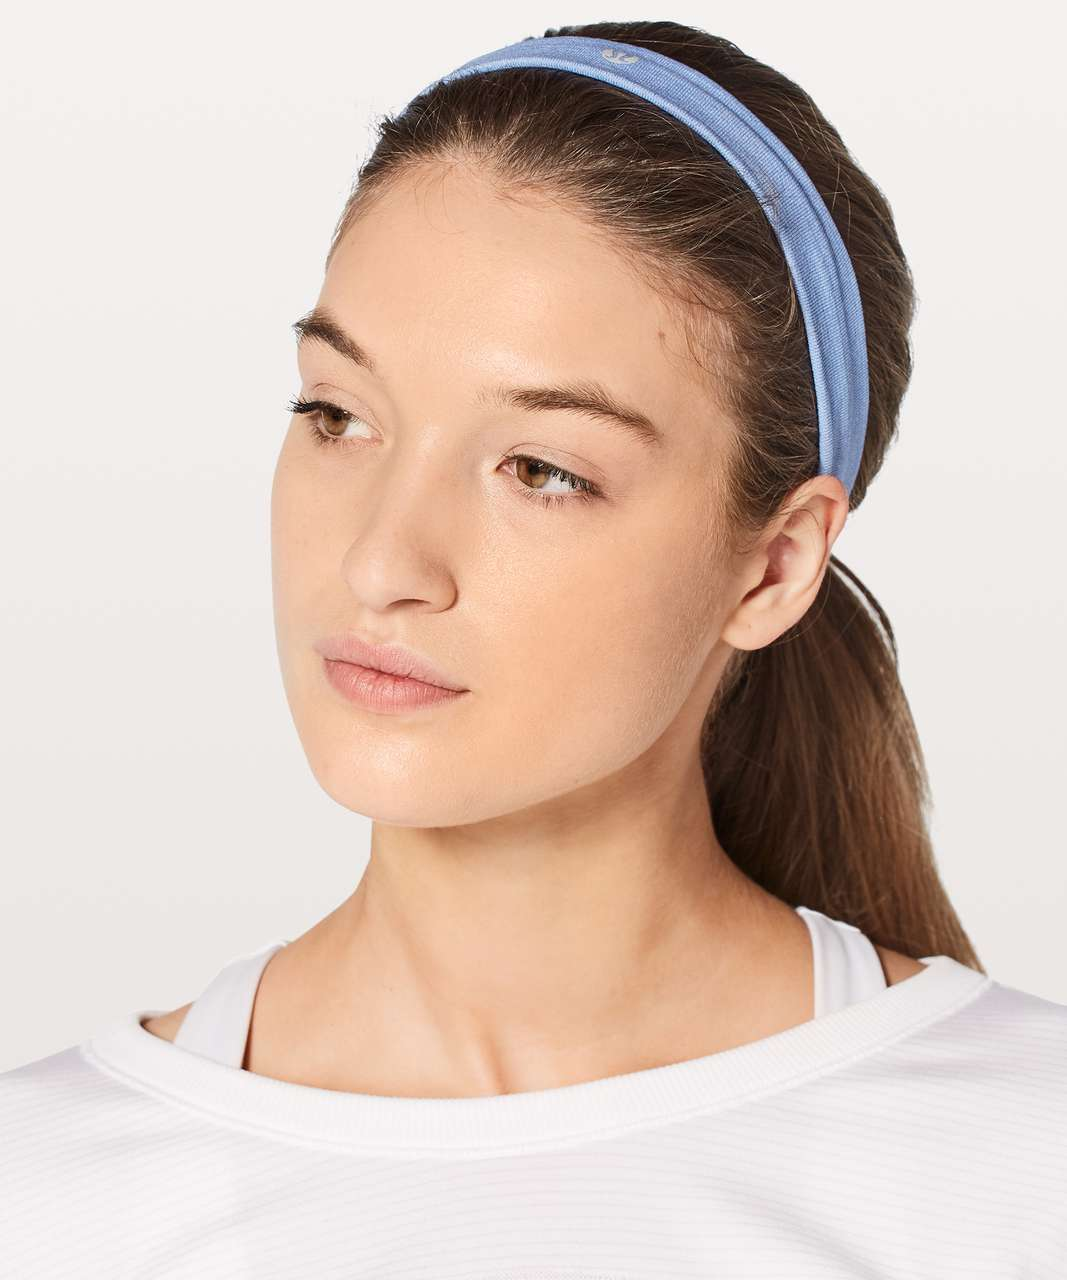 Lululemon Cardio Cross Trainer Headband - Lullaby / White